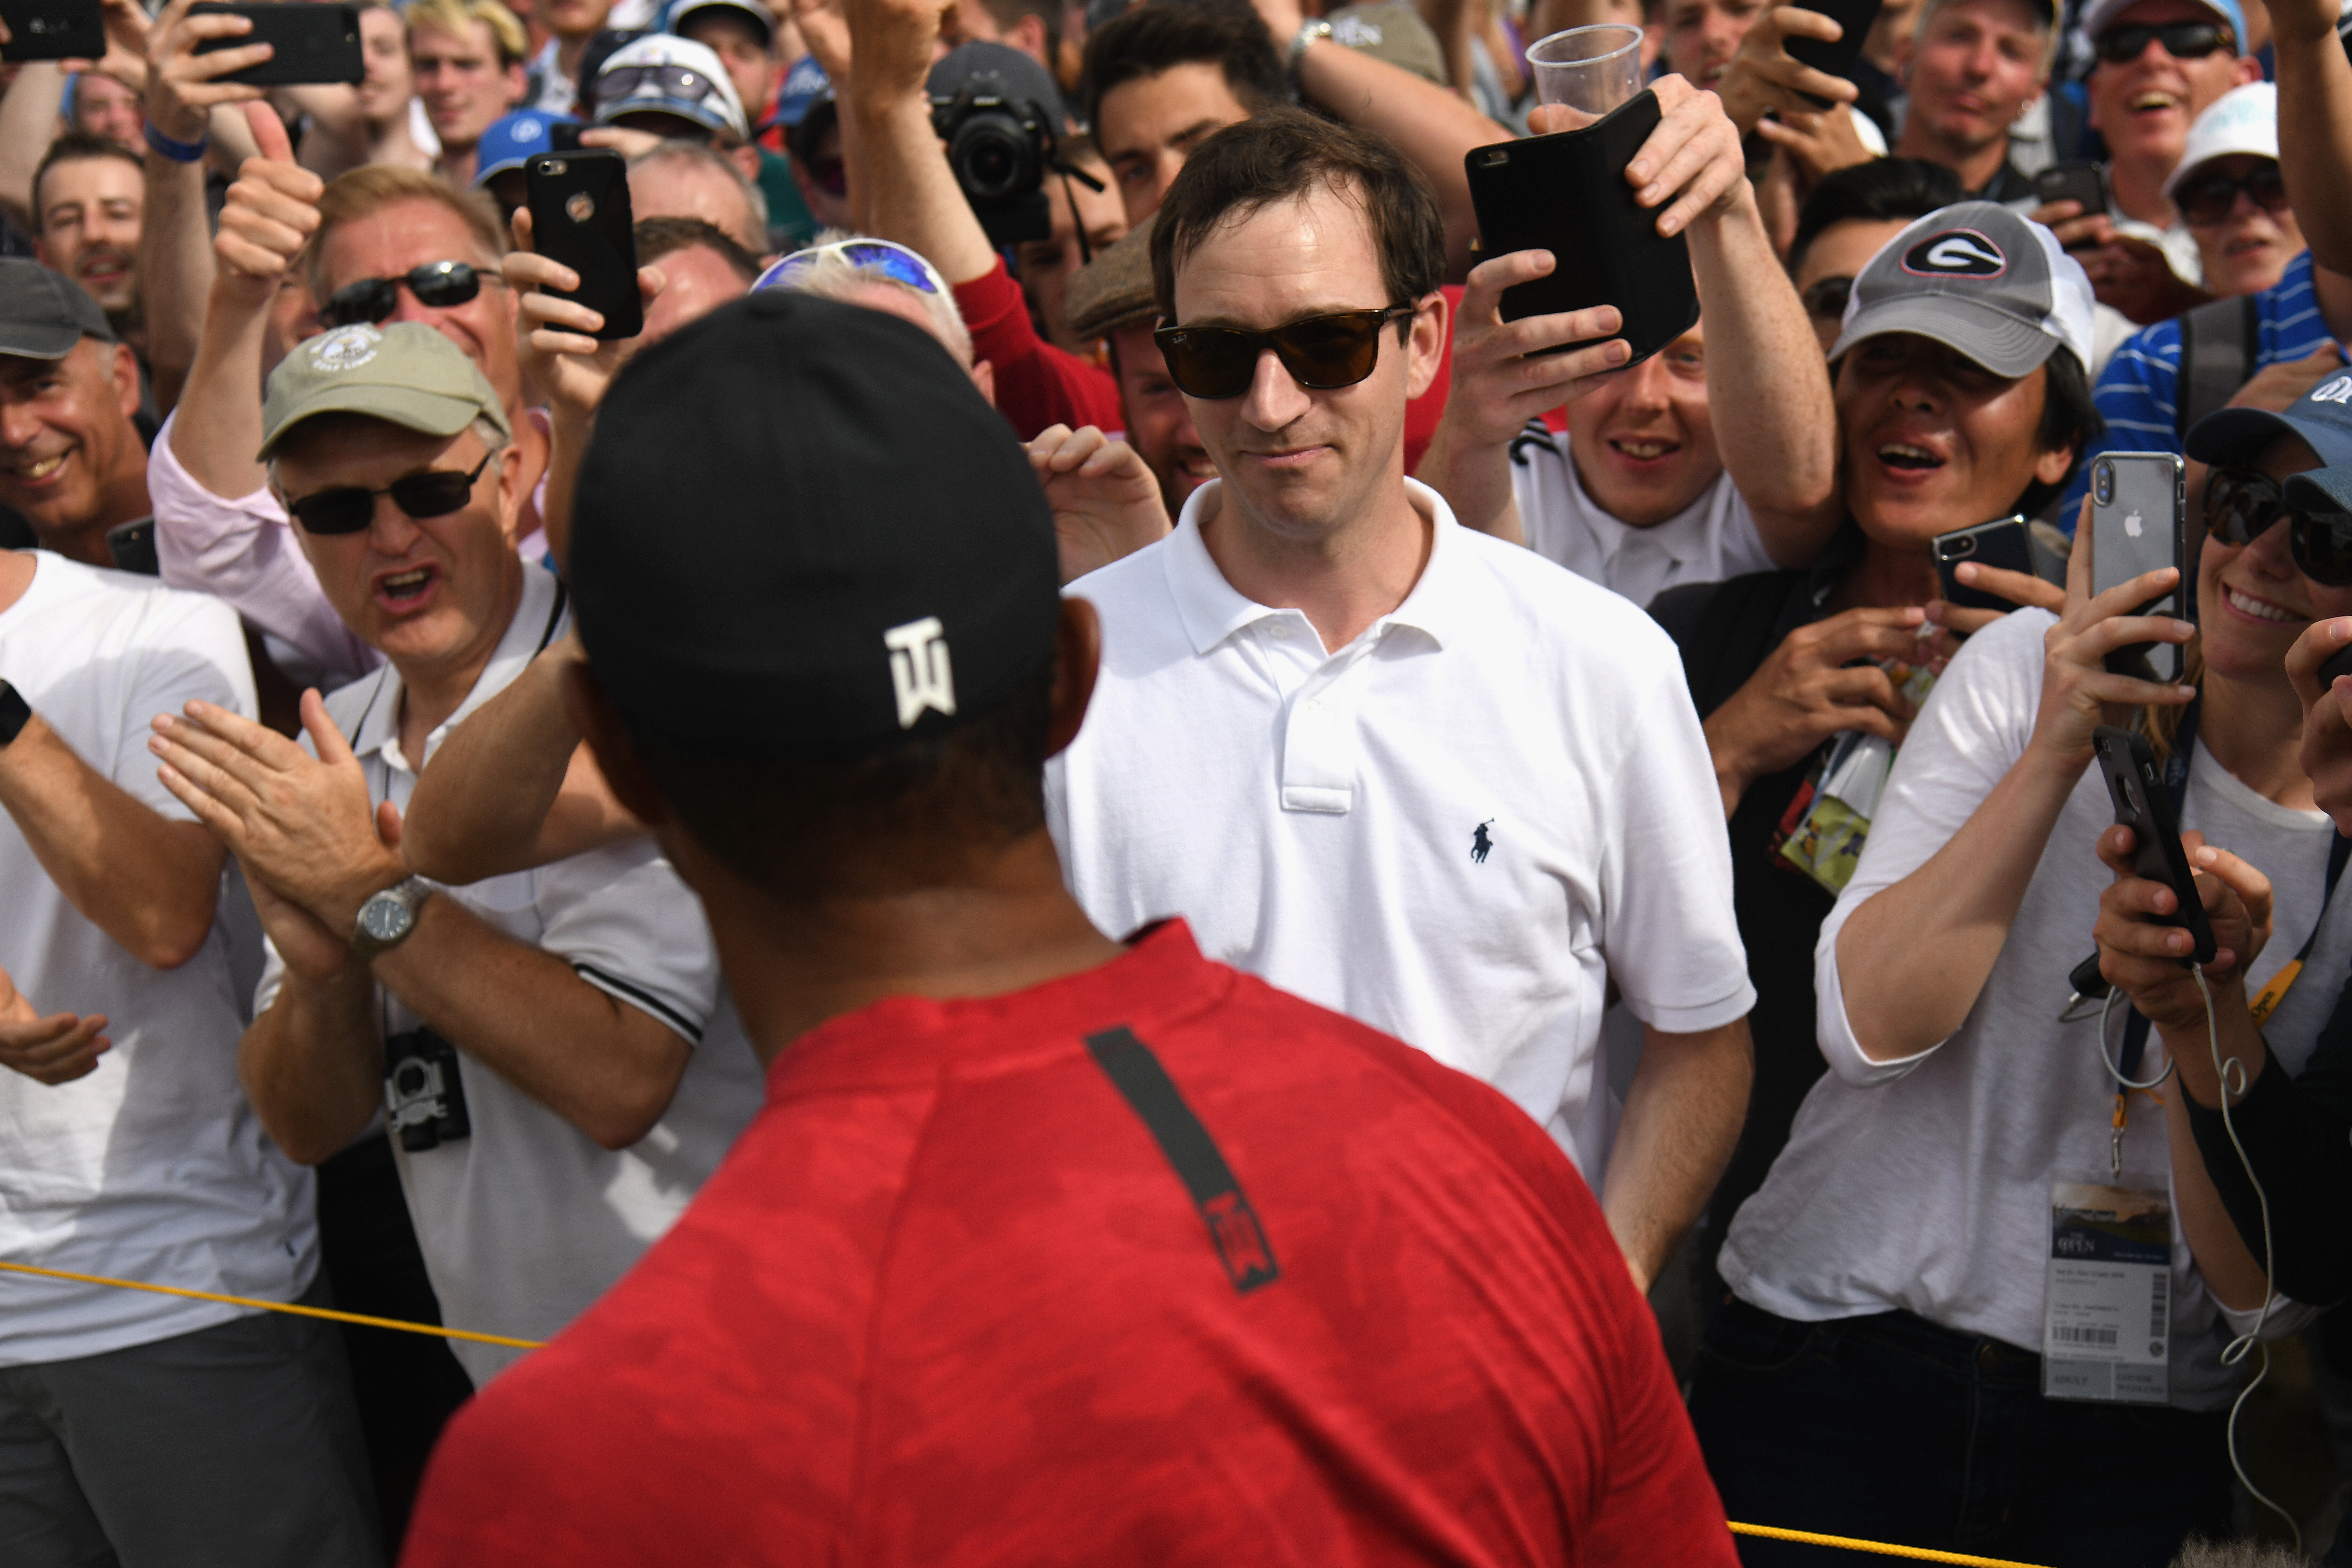 WATCH: Fan who was hit by Tiger Woods filmed entire incident